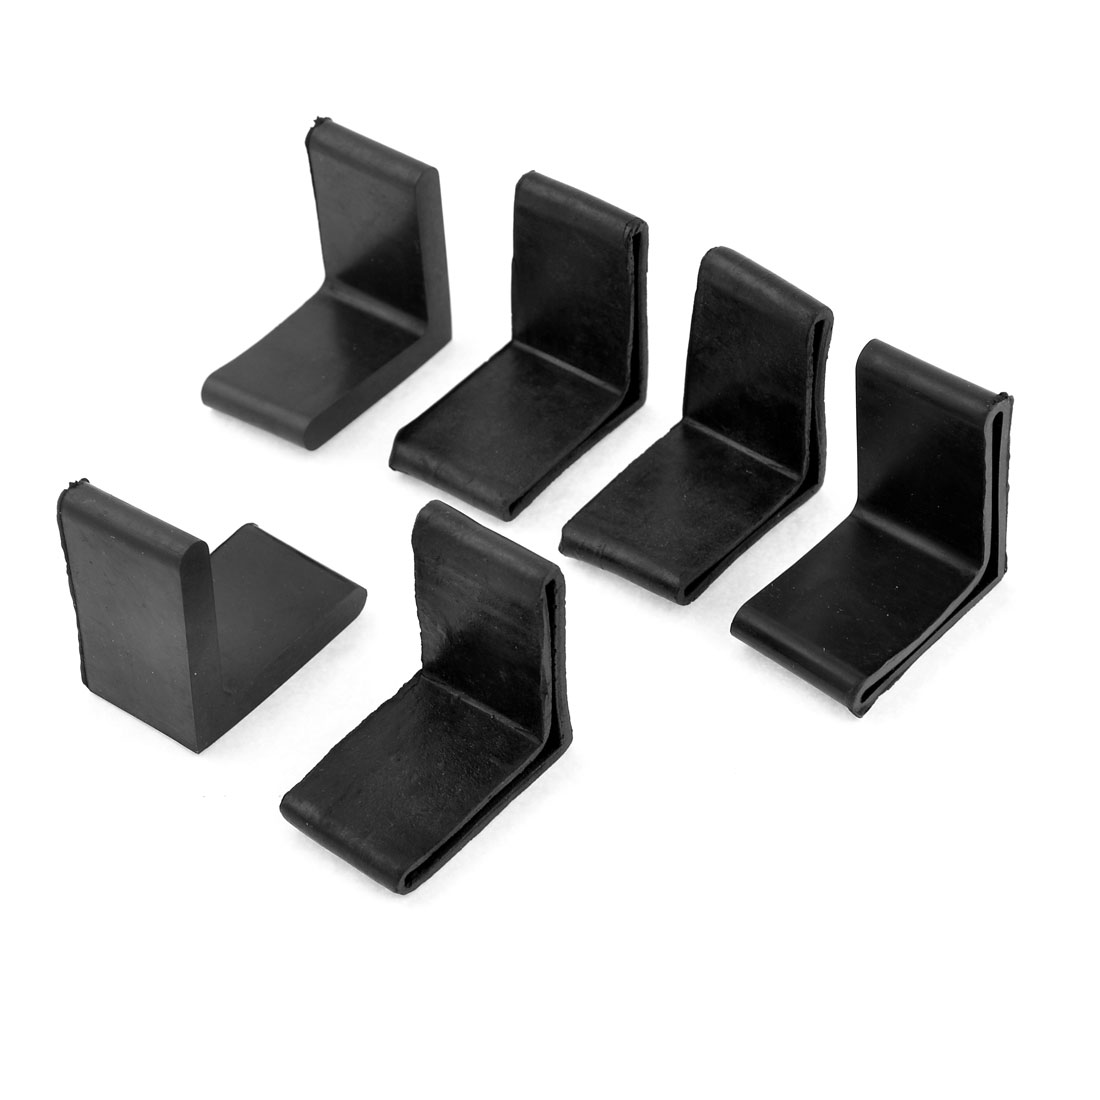 6 Pcs 48mm x 48mm L Shaped Furniture Angle Iron Black Rubber Foot Covers